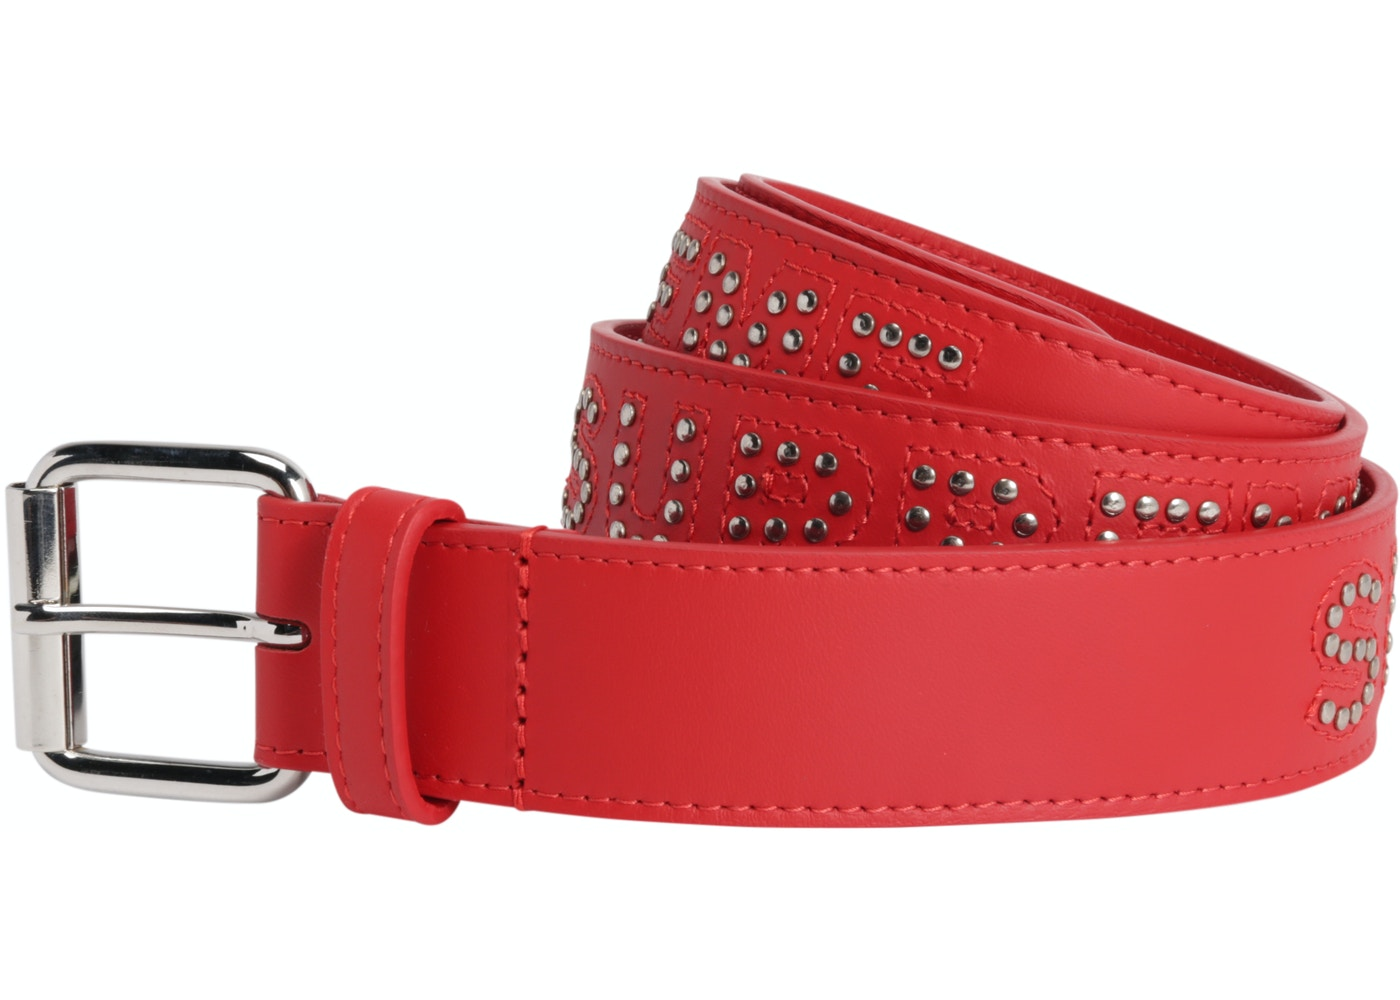 ccb050531ad5 Supreme Studded Logo Belt Red - SS18